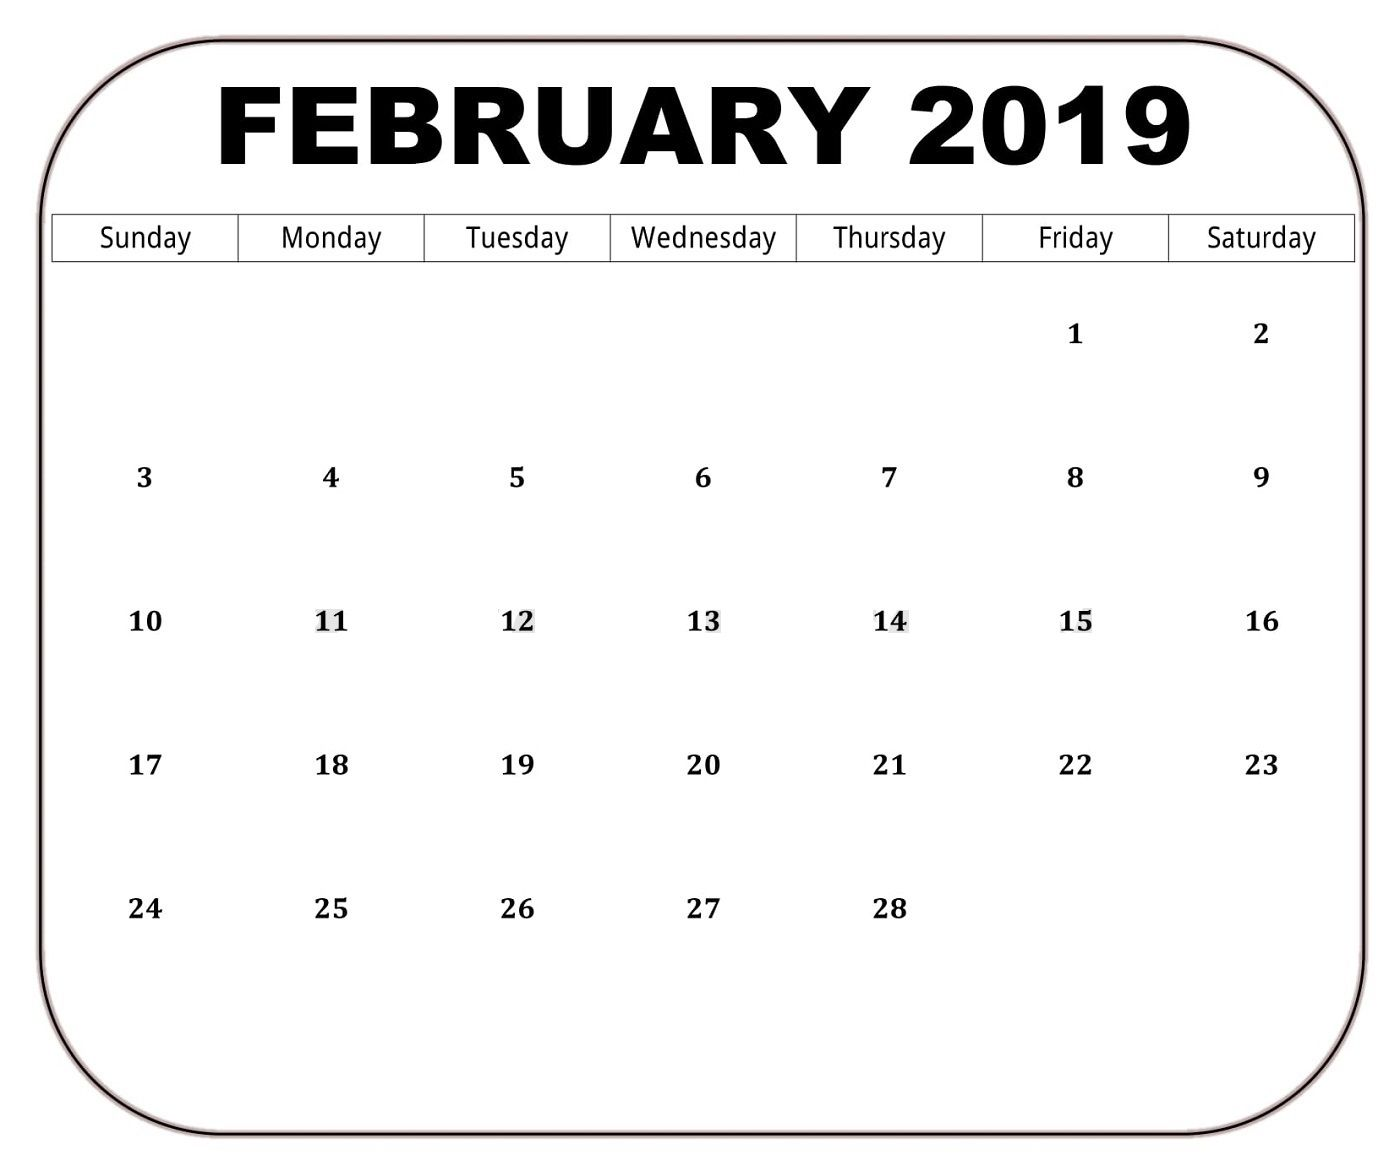 Download February 2019 Holidays Calendar 125 February 2019